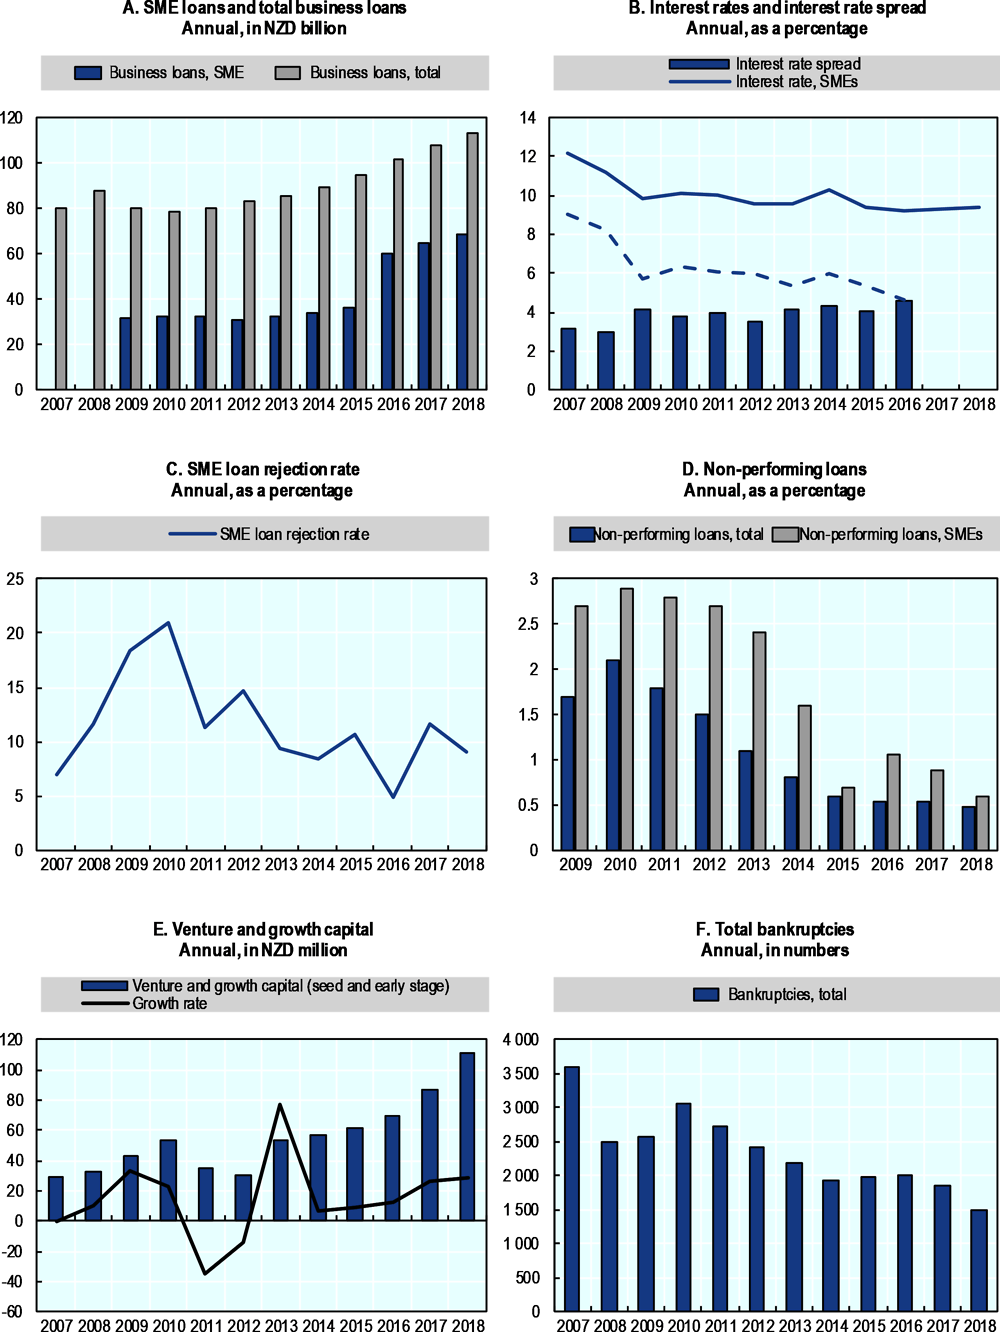 Figure 33.1. Trends in SME and entrepreneurship finance in New Zealand